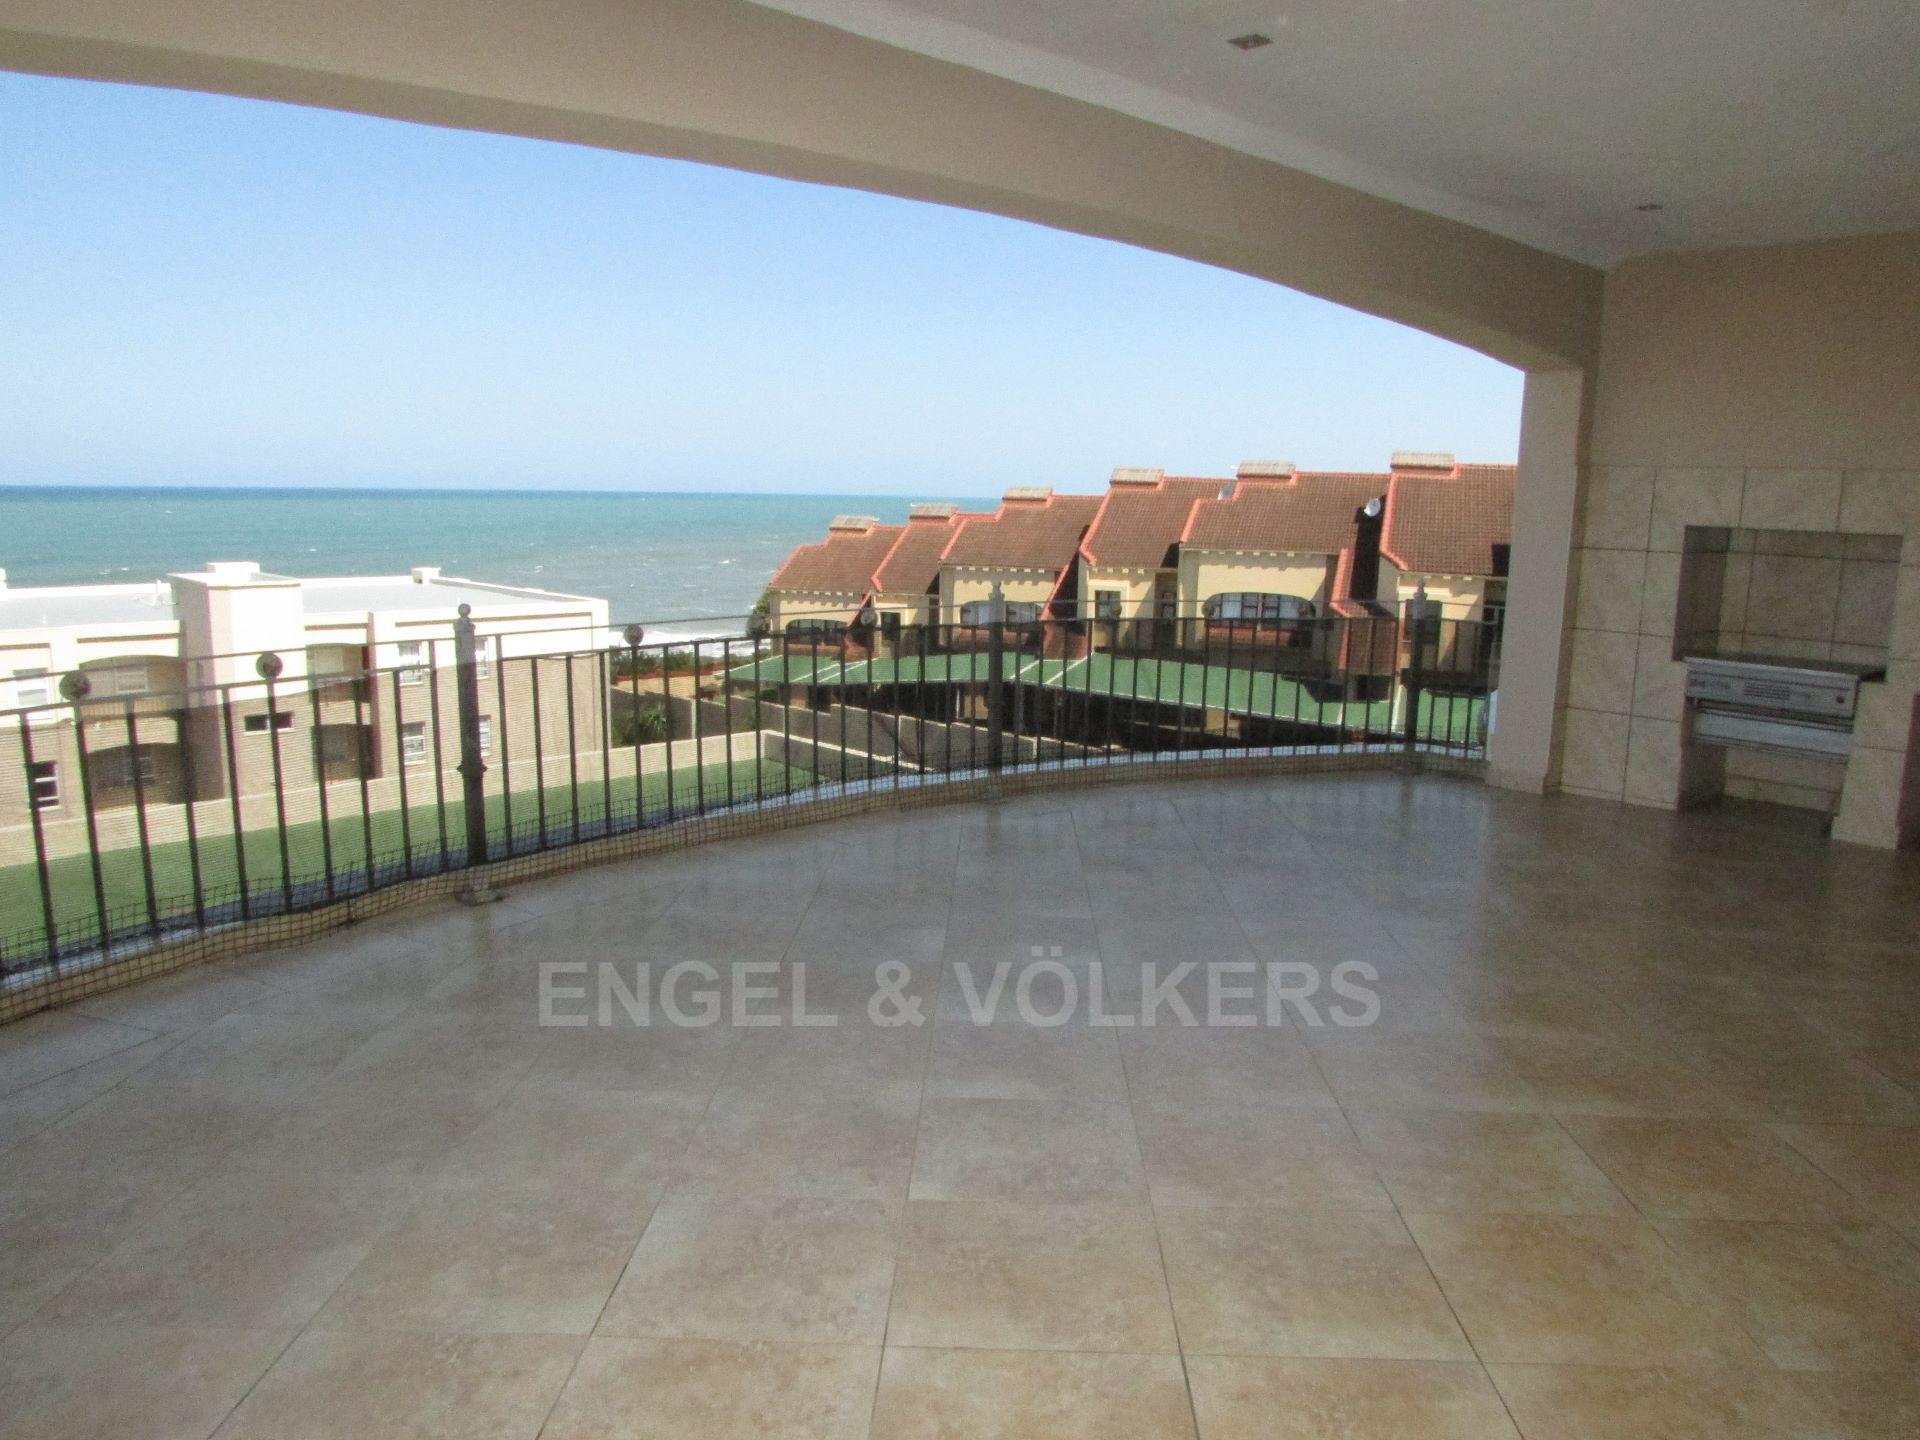 Apartment in Uvongo - 010 Glyndale Sands.JPG